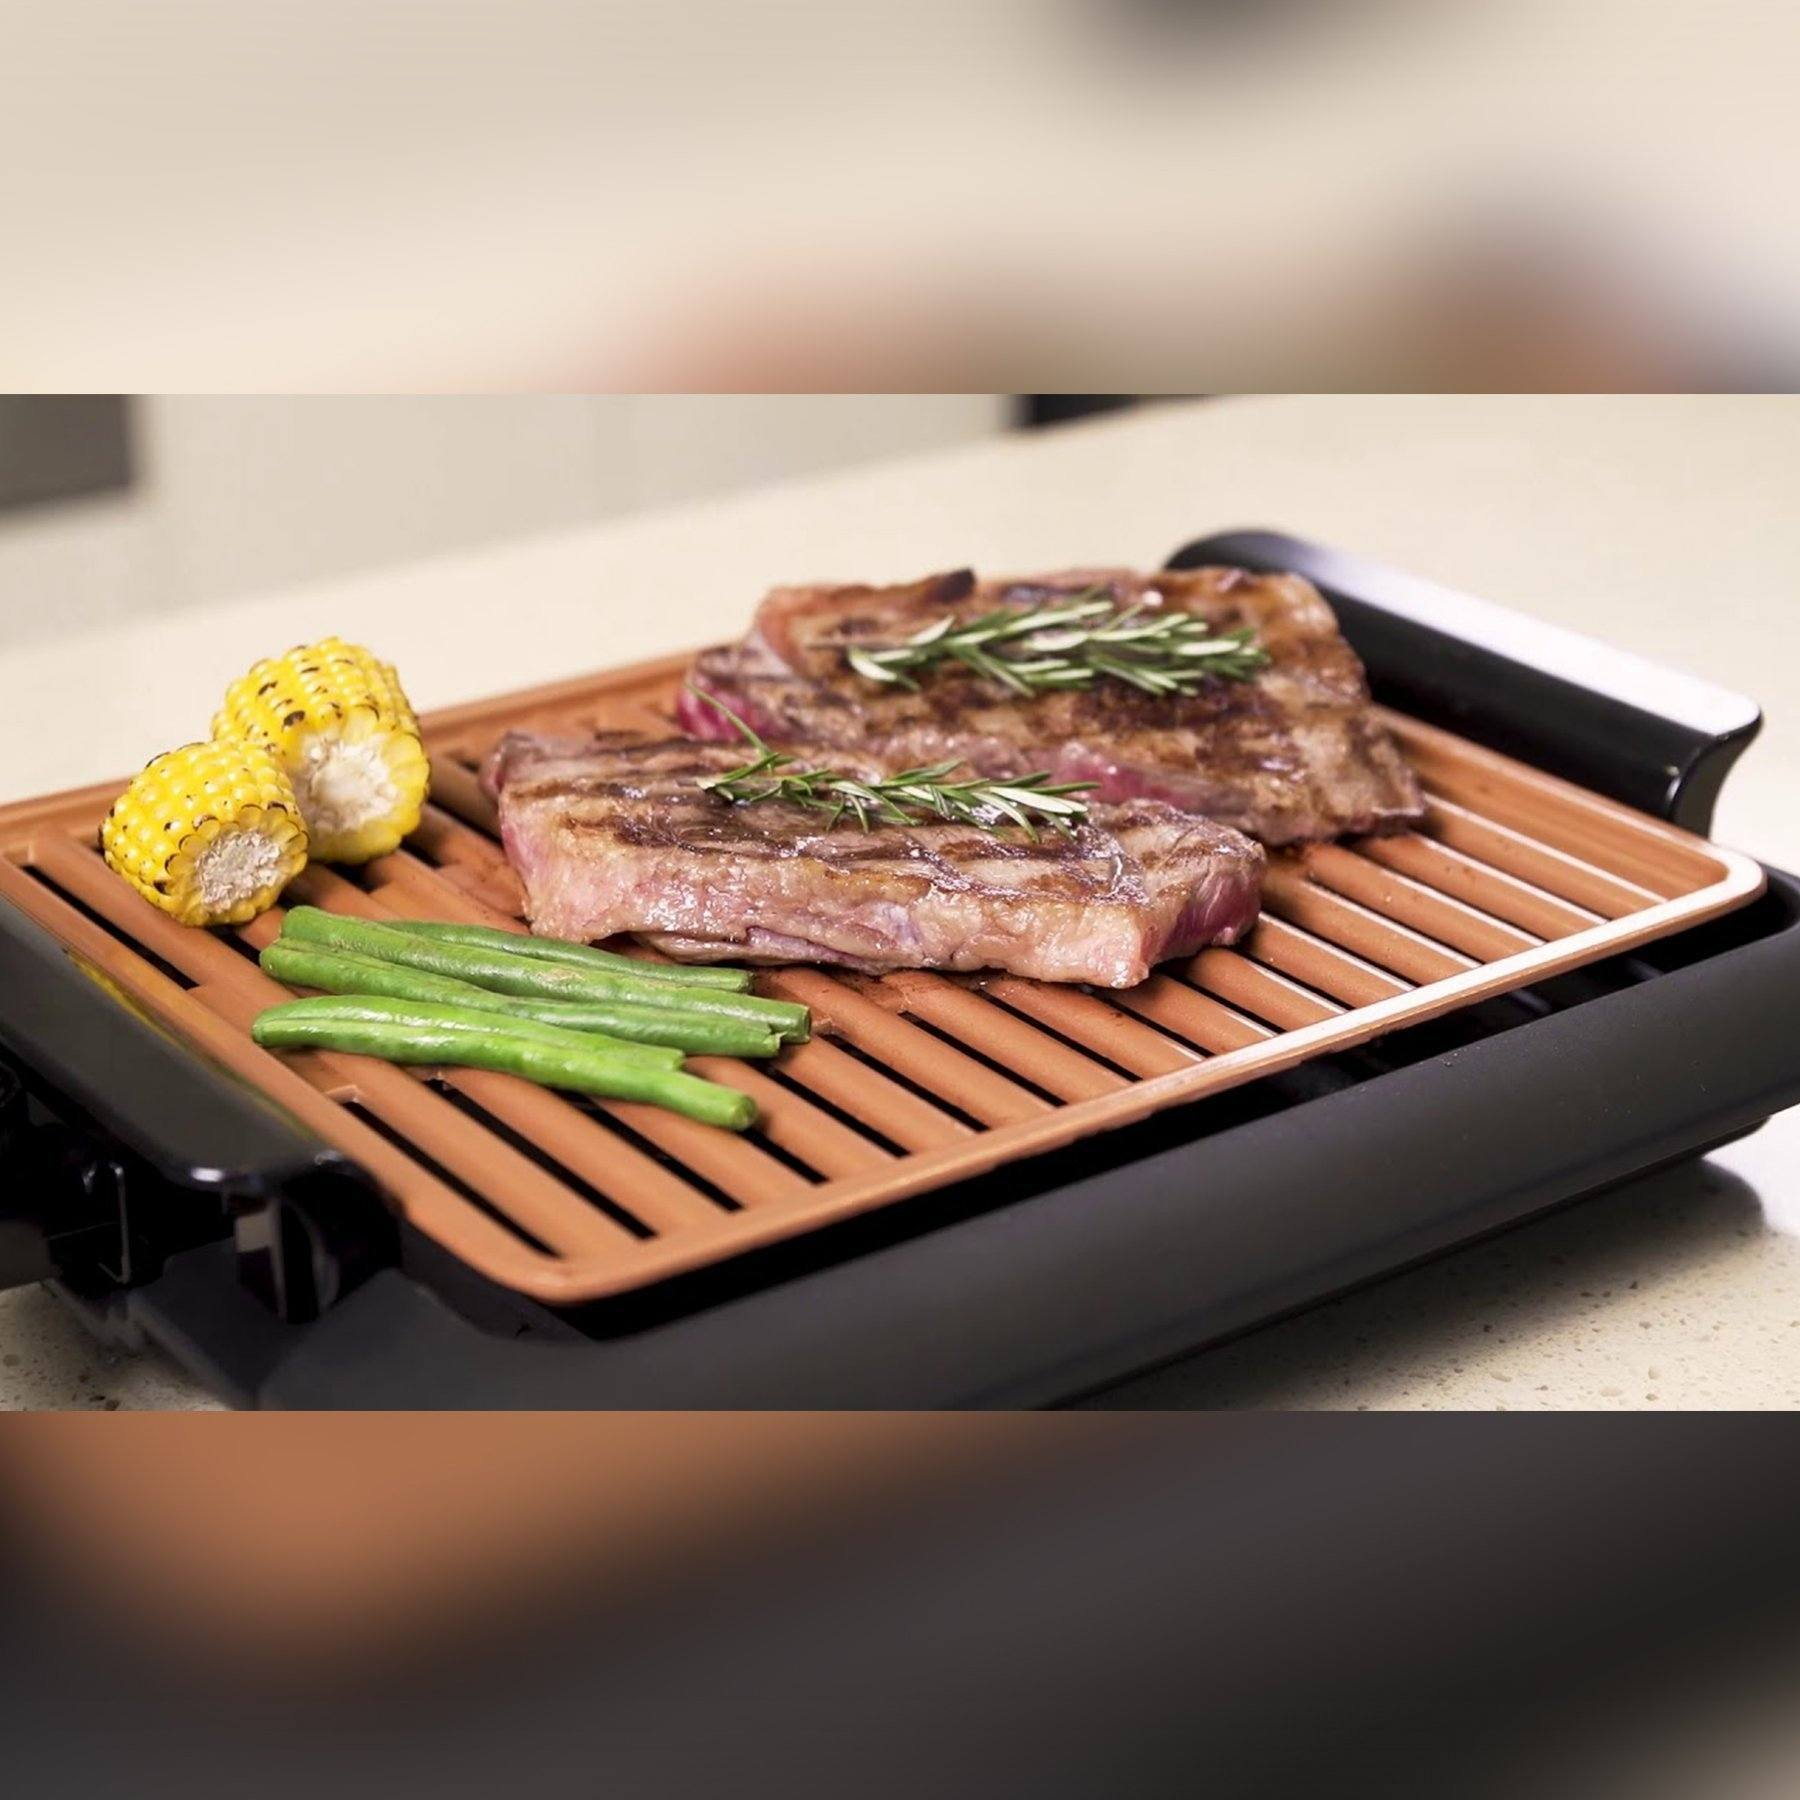 Horizon Care Smokeless Grill - Nonstick and Portable Electric Indoor Grill